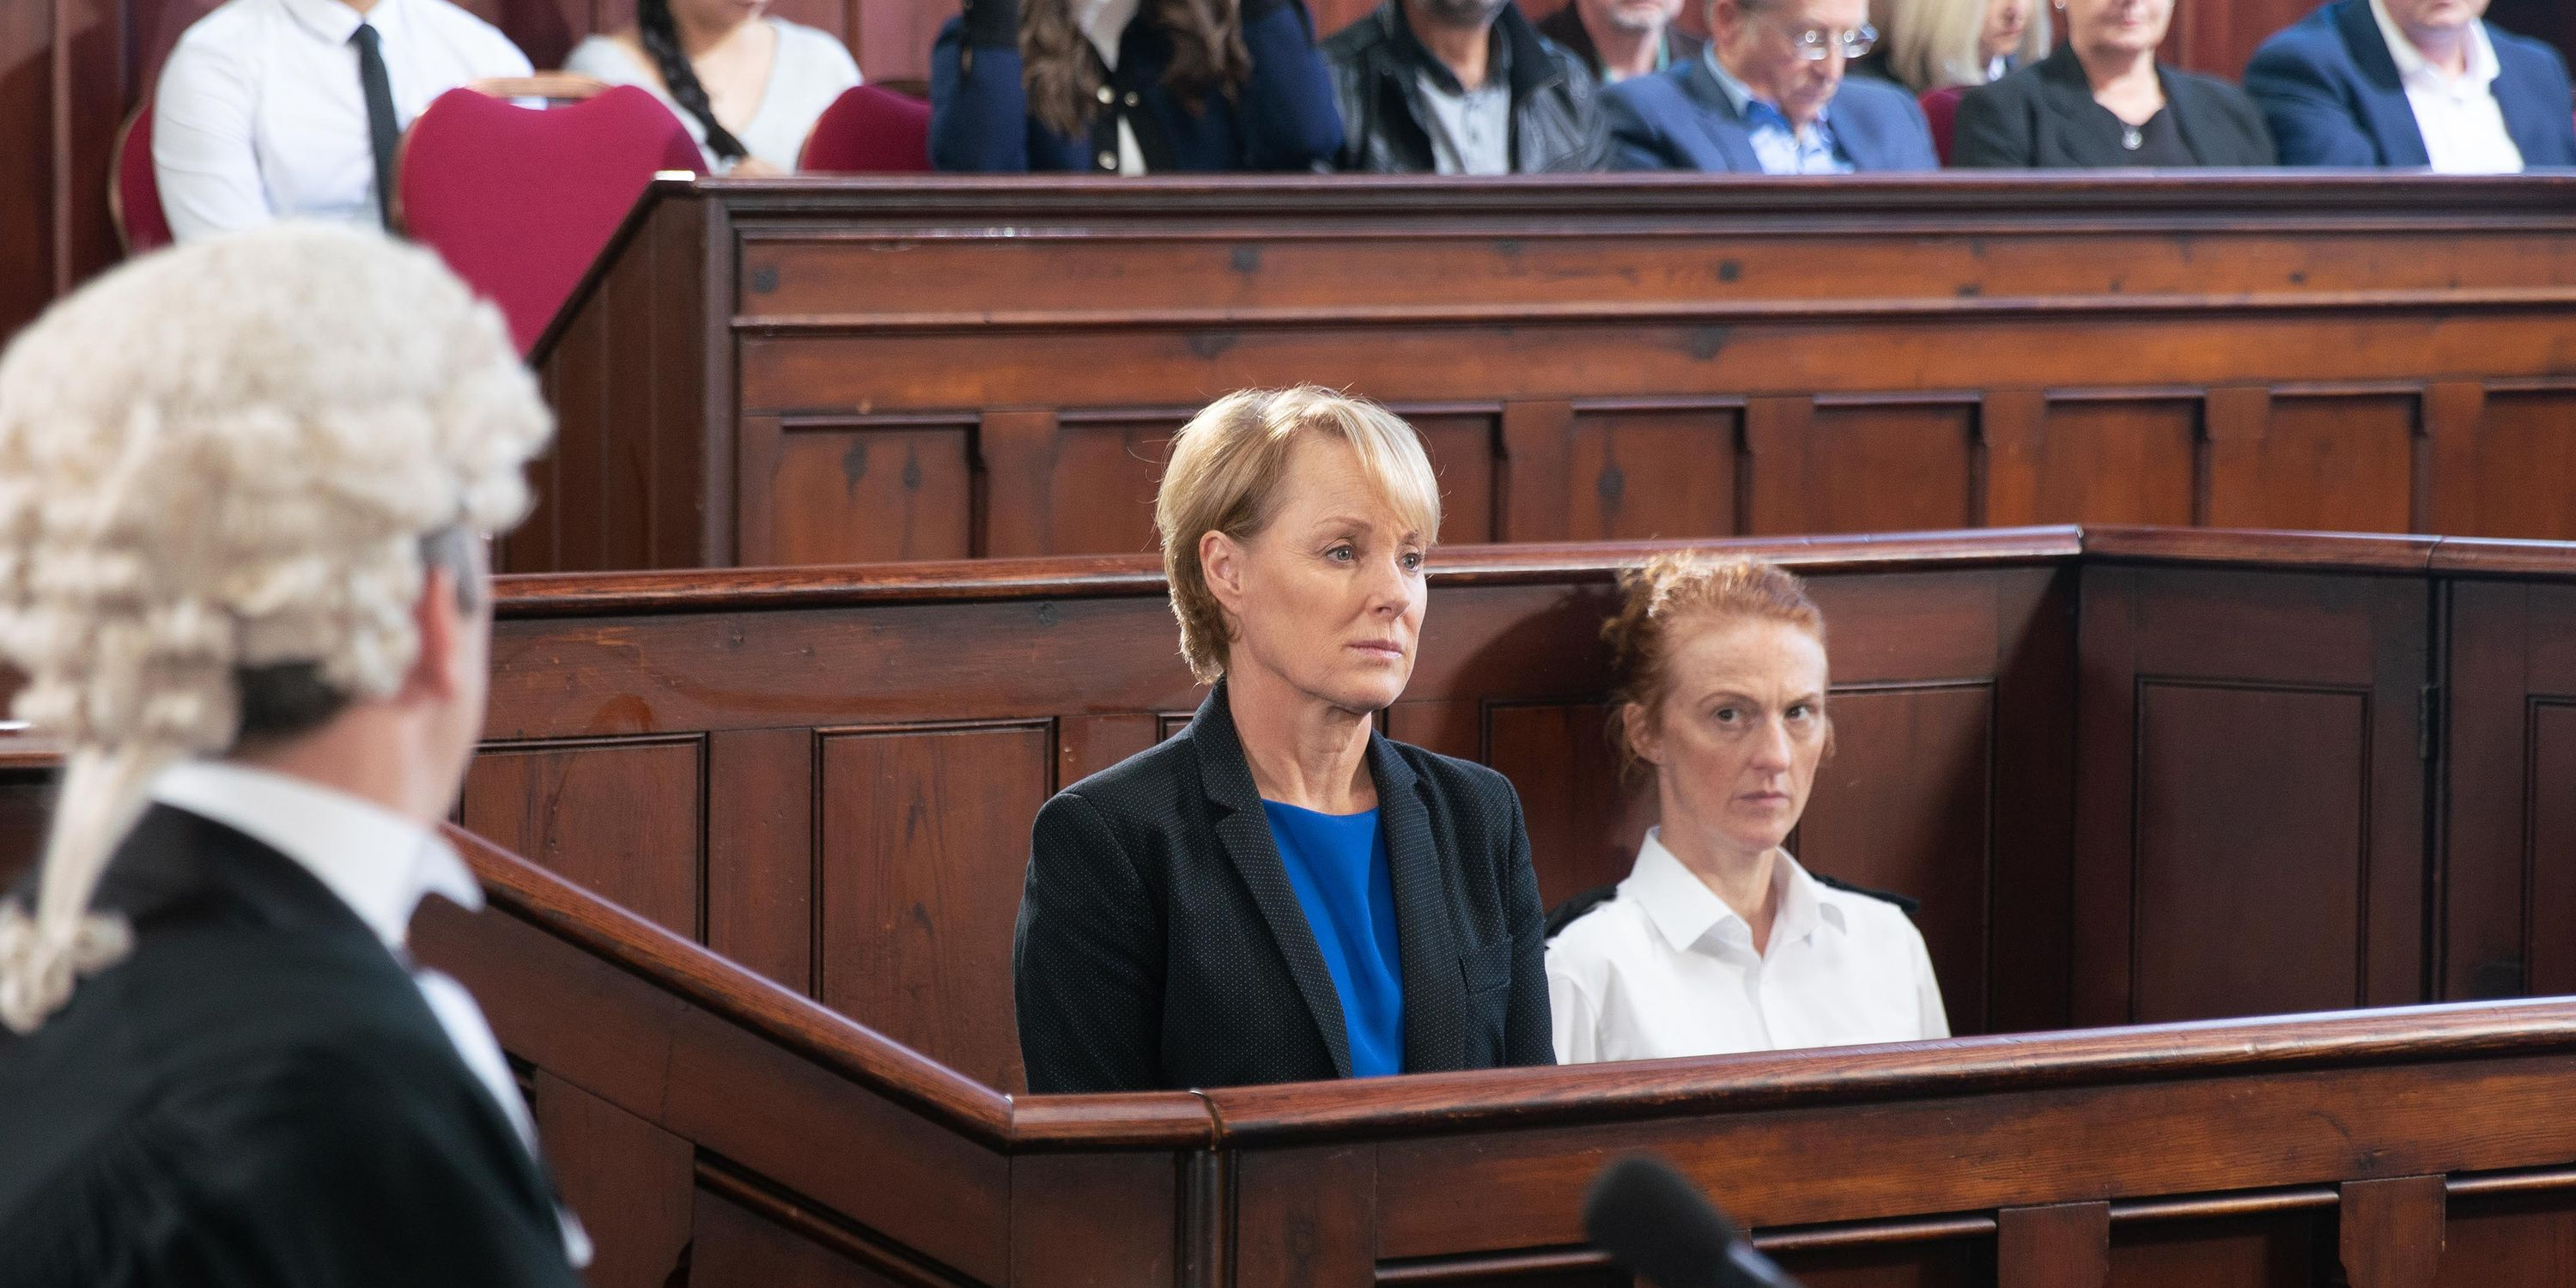 Sally Metcalfe appears in court in Coronation Street